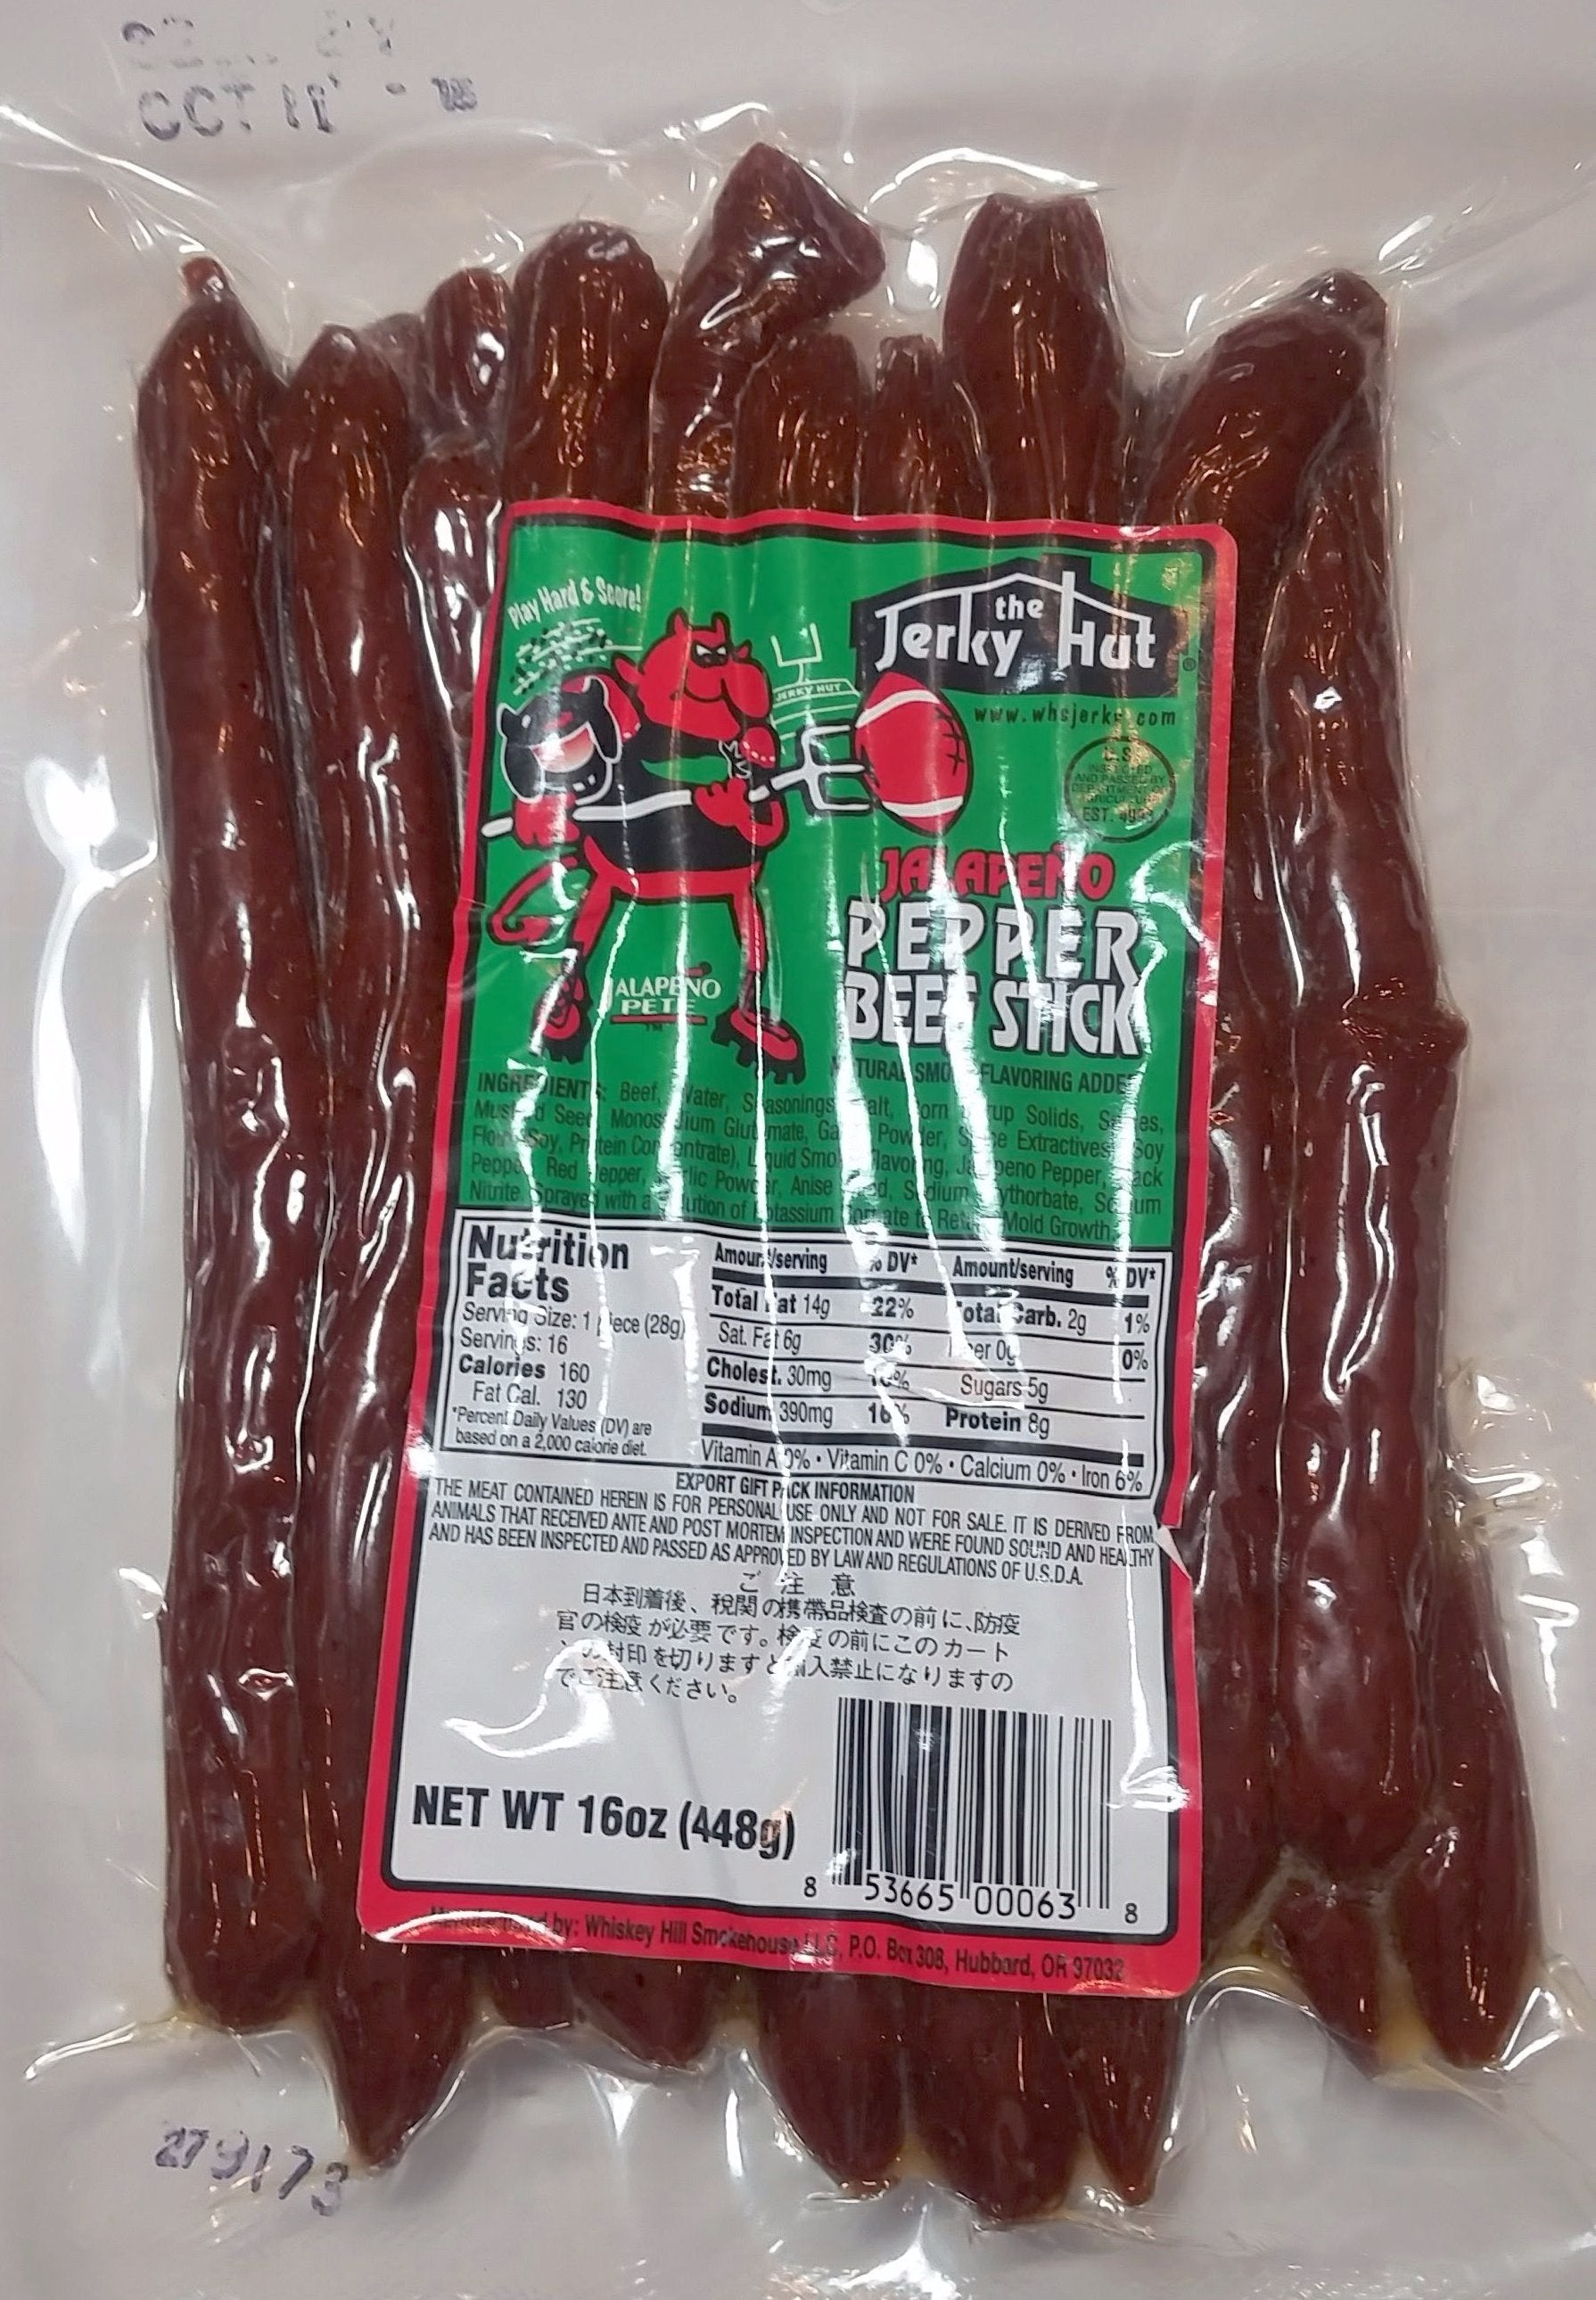 Jerky Hut - Jalapeno - Beef sticks (1 LB) - The Jerky Hut online